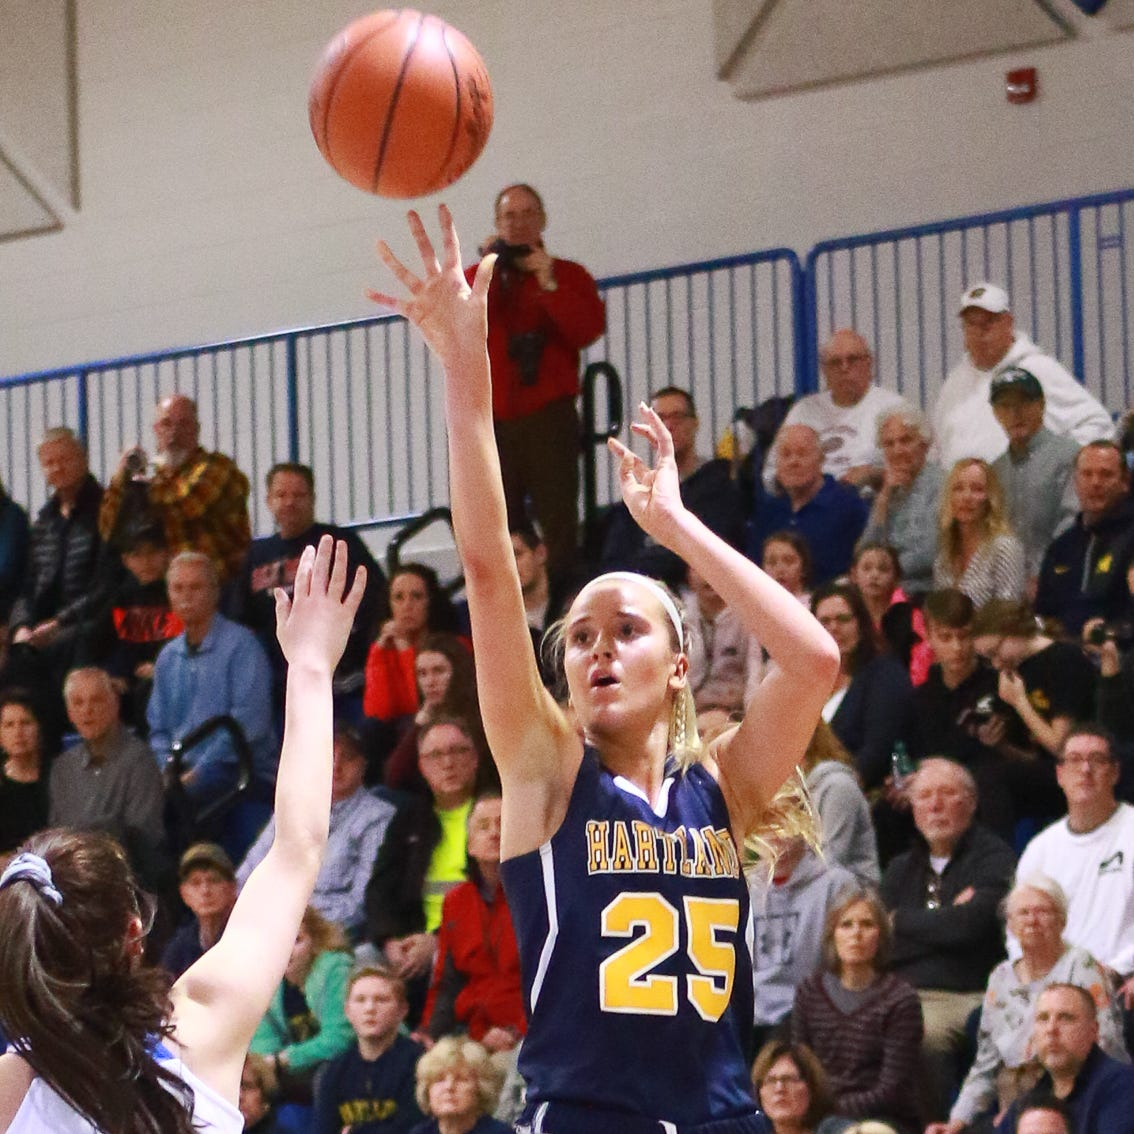 Hartland girls hope to 'break that door open' in basketball quarterfinals